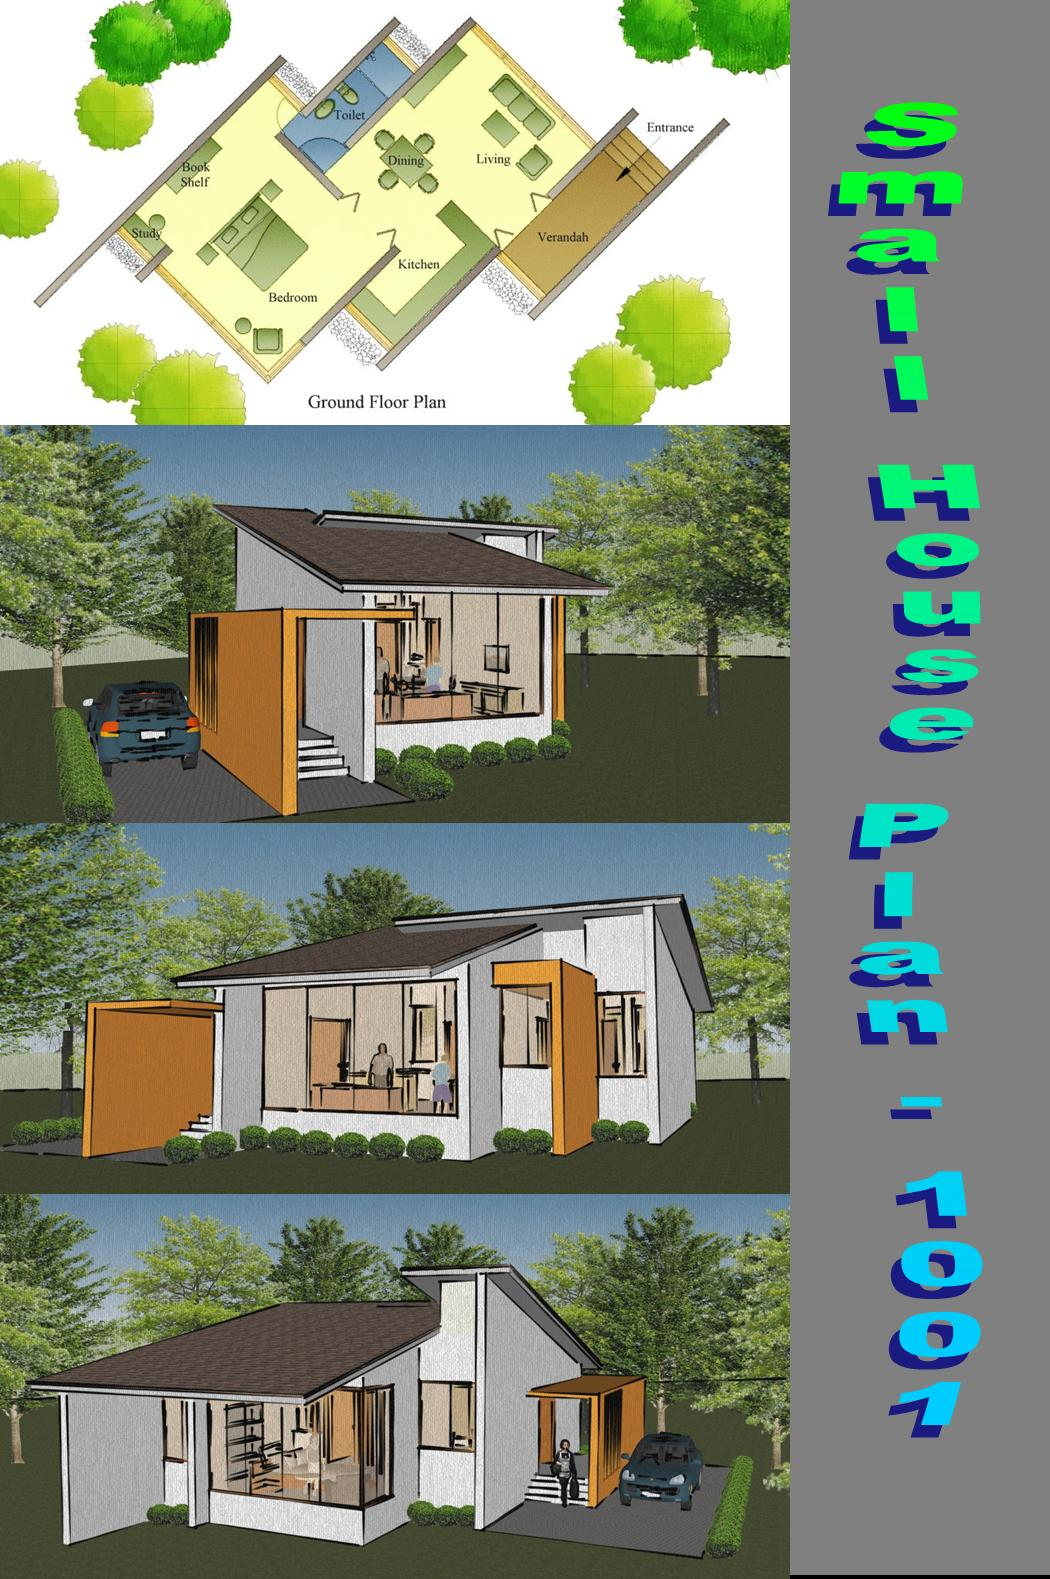 Home plans in india 5 best small home plans from for Houde plans